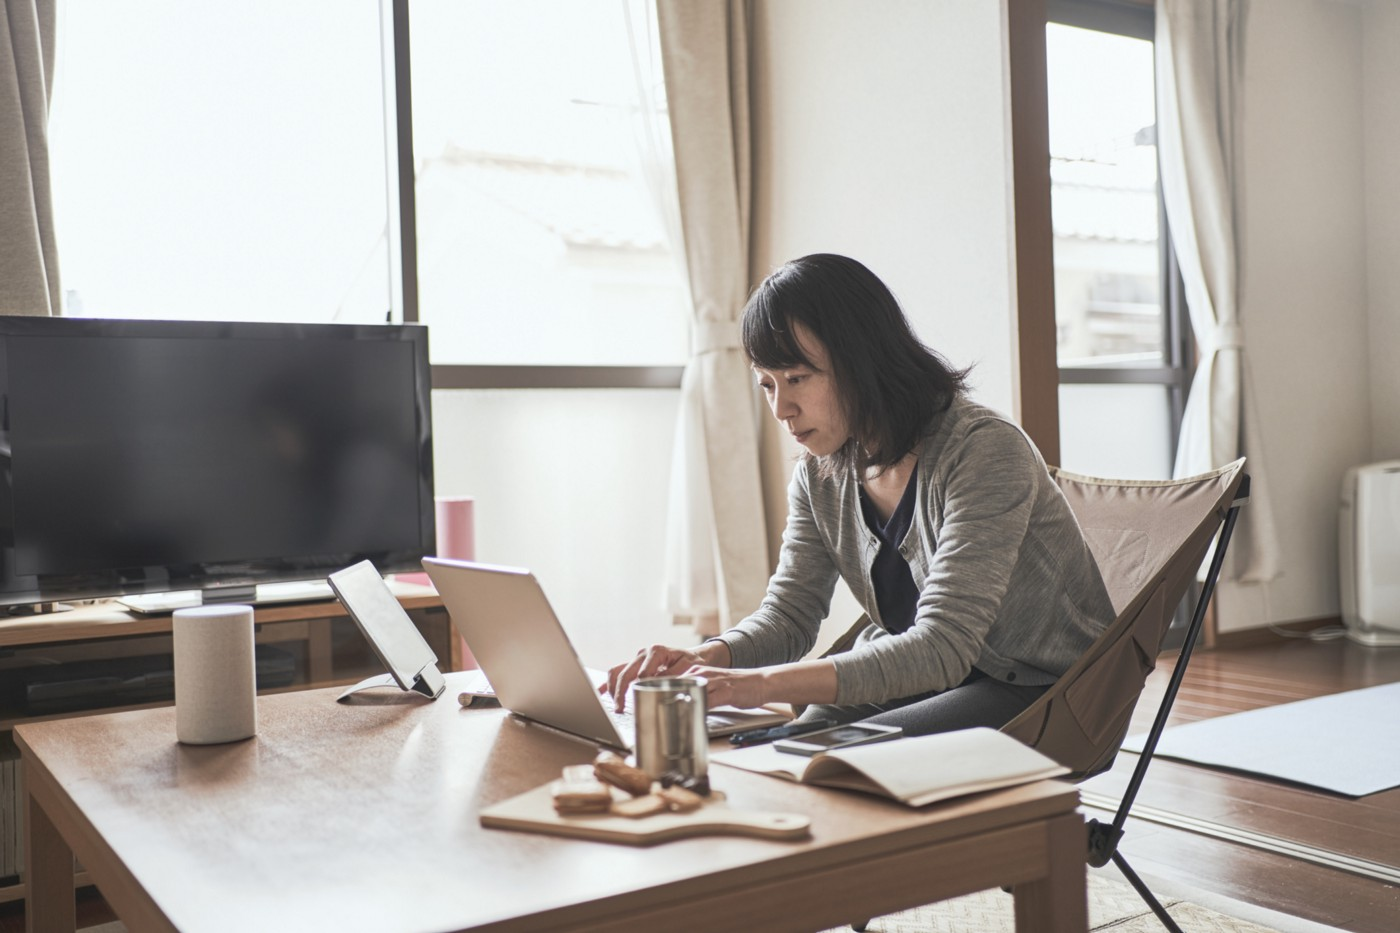 Asian woman working on her laptop in her living room.